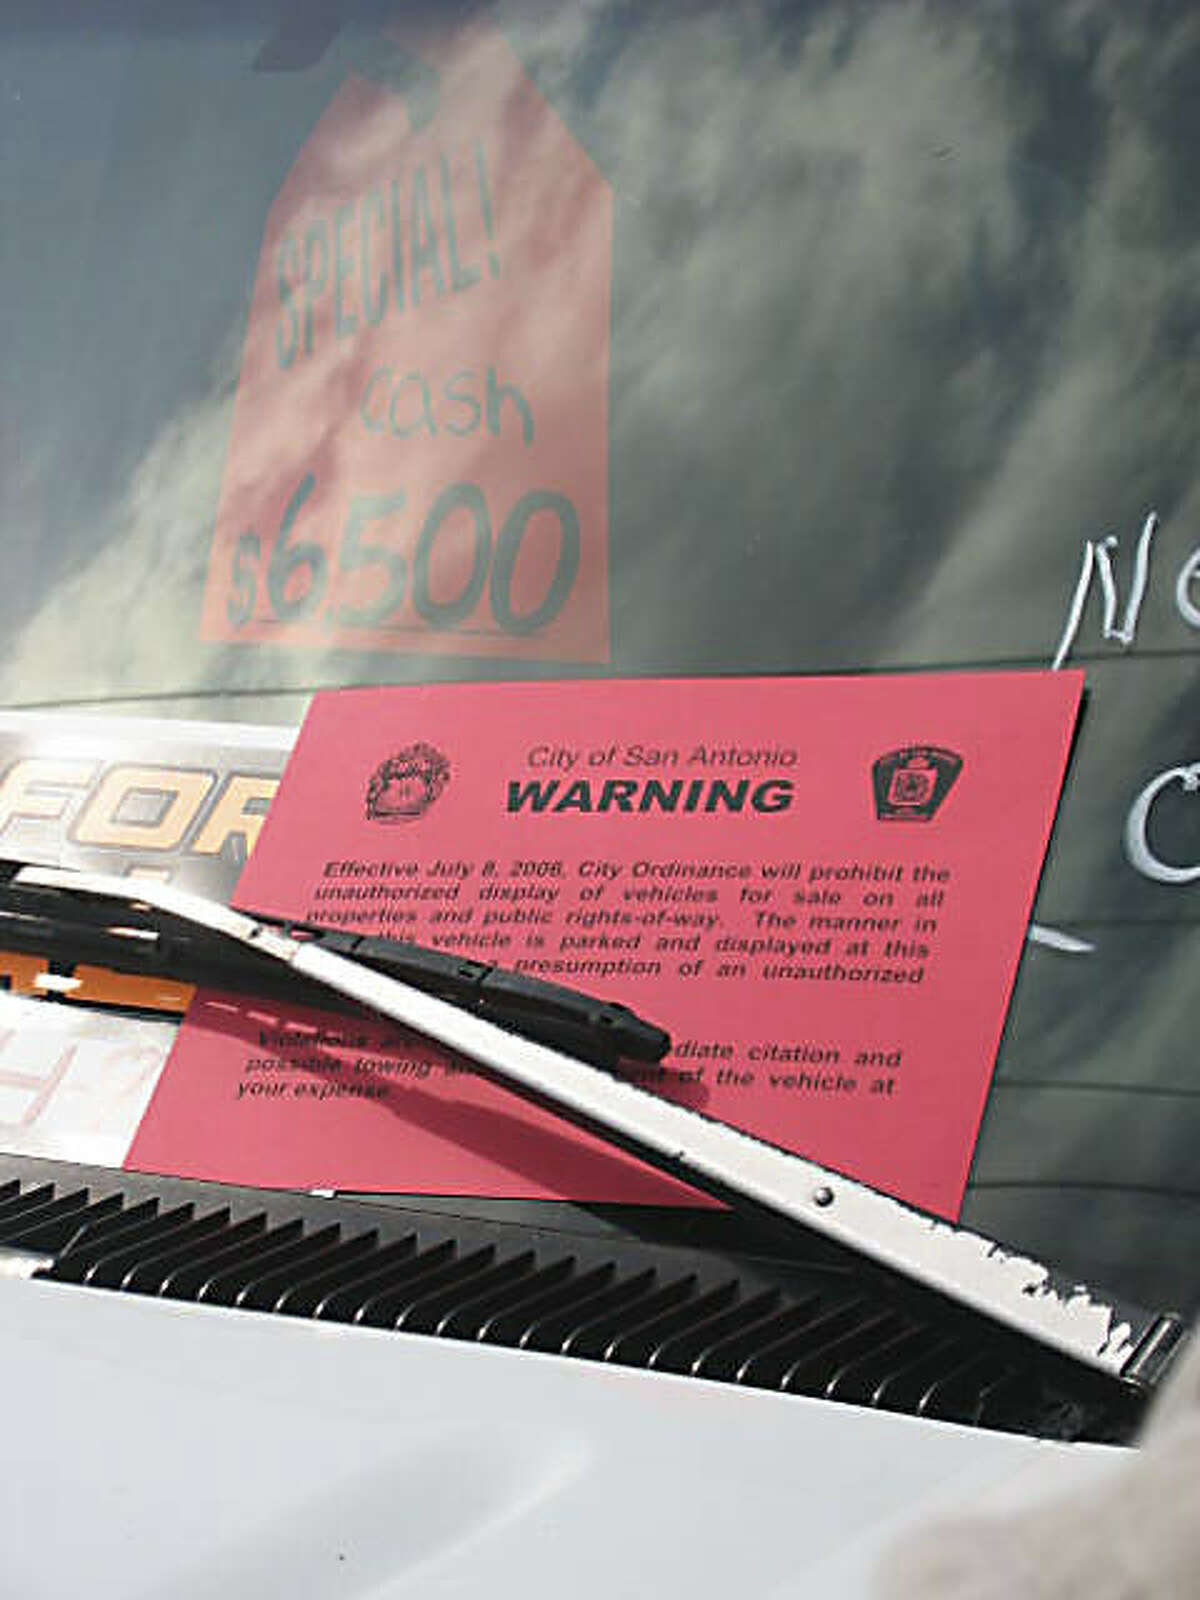 A truck for sale receives a notice warning of a prohibition of the activity.